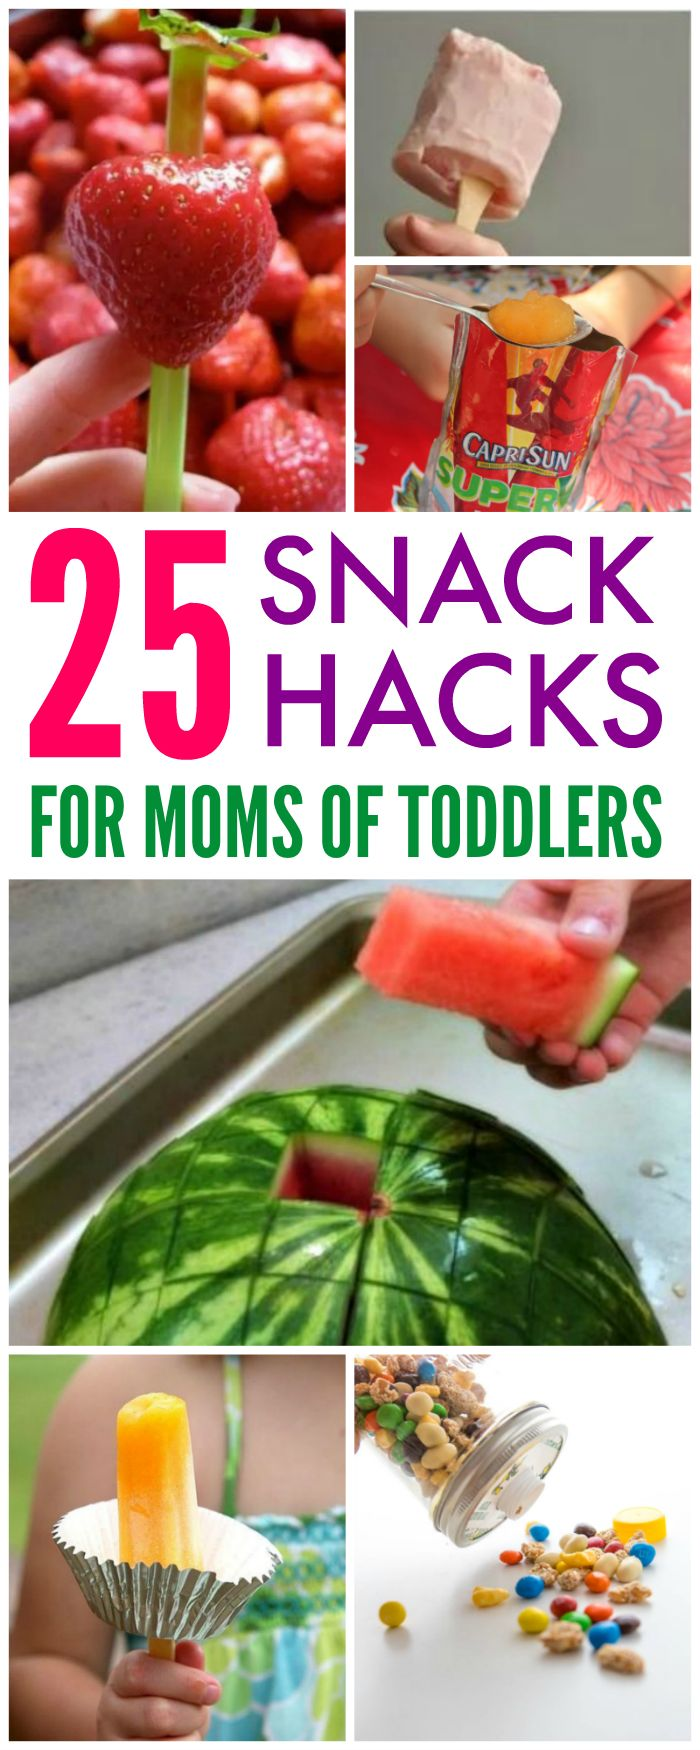 Life Hacks For Moms 19205 Best Images About Life On Purpose On Pinterest Christian